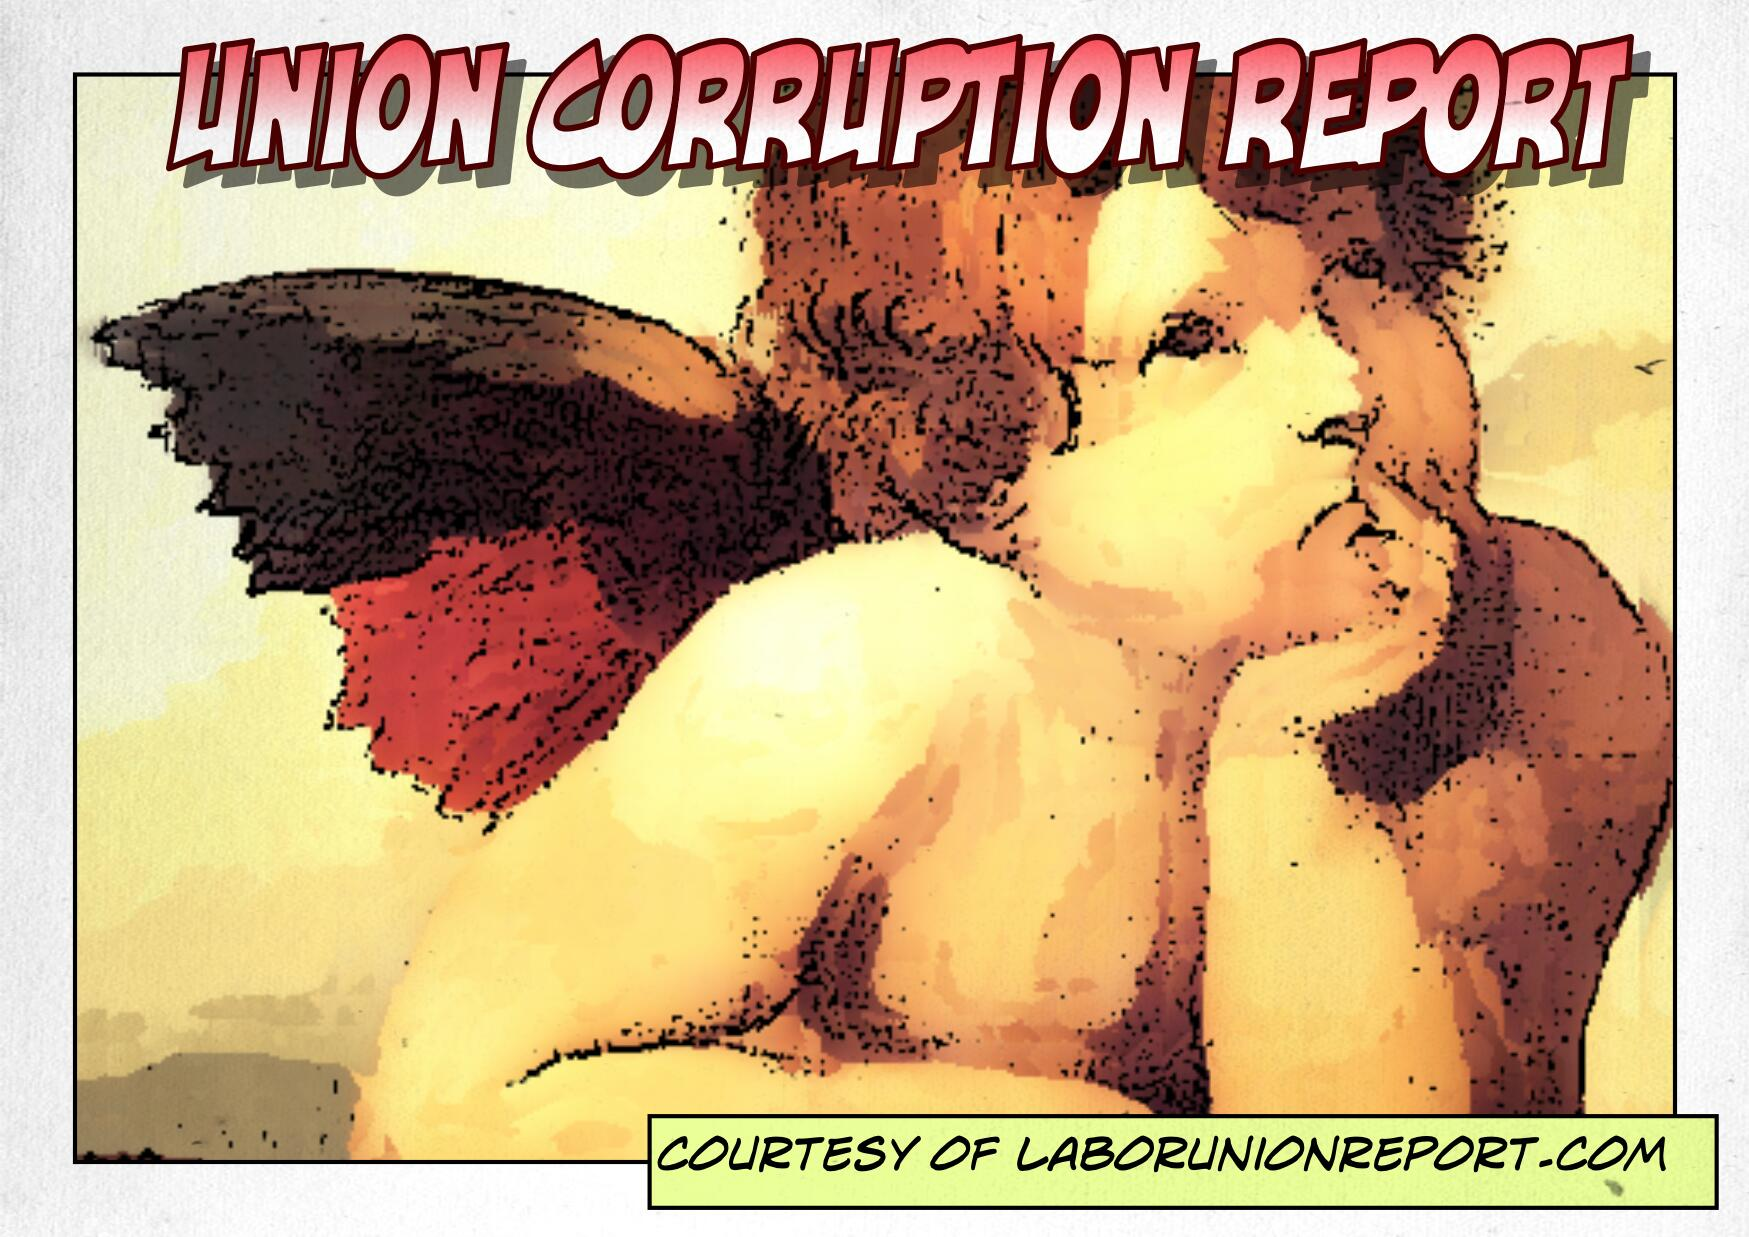 Union Corruption Report: February 2015